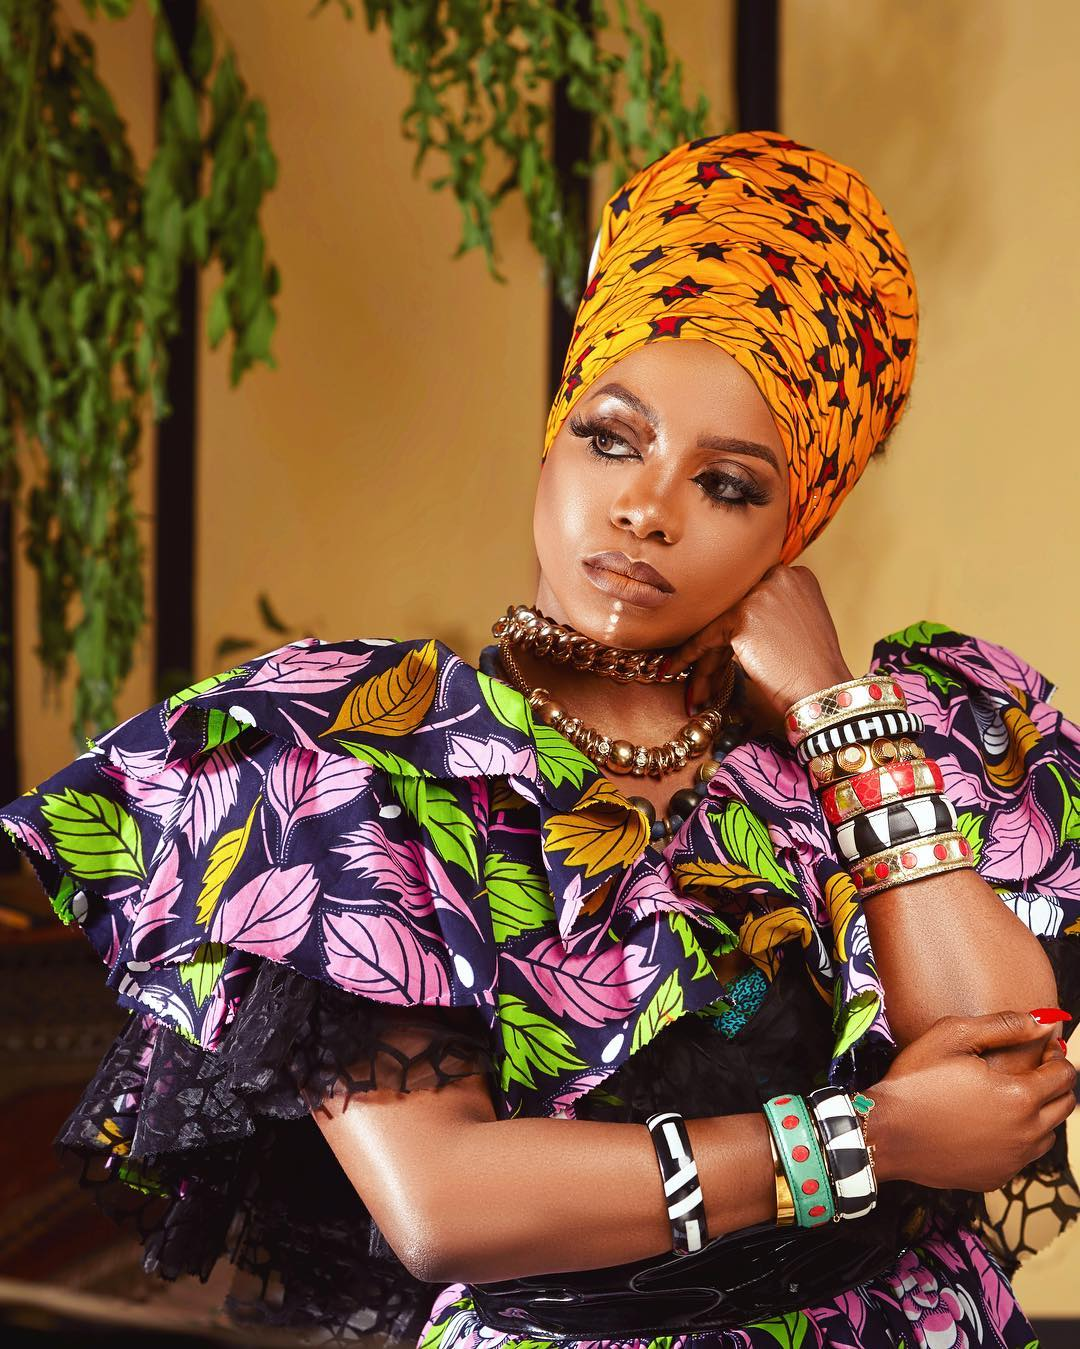 CHIOMA IKOKWU Of Good Hair Limited Is A Spicy IGBO Amaka In These Photos